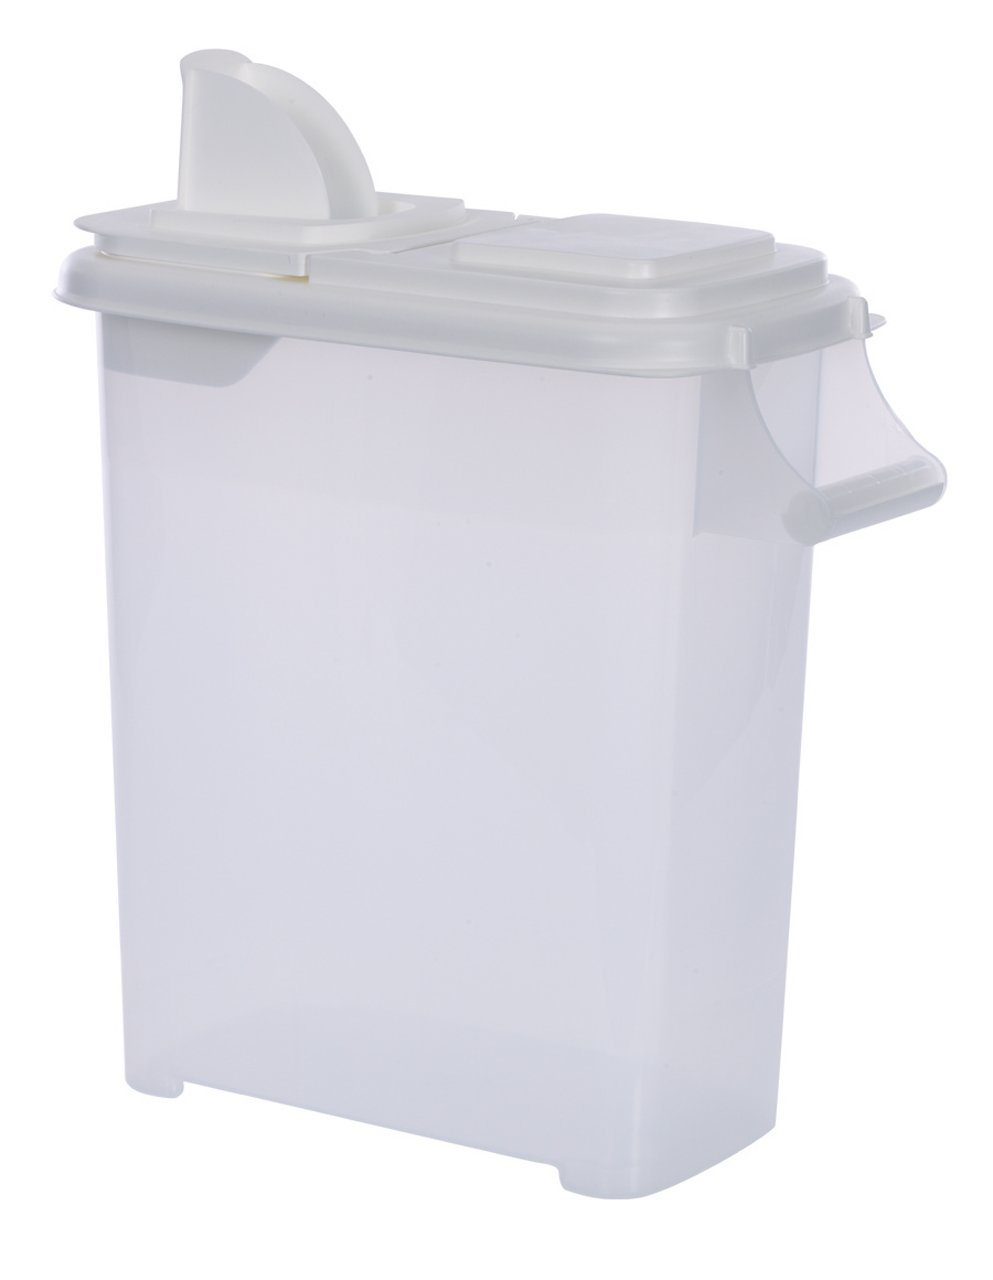 Large (Up to 22lb) Fresh Dry Dog & Cat Food Plastic Storage Container With Flip Lid & Pour Spout For Pet Food, and Bird Seed, BPA Free by Buddeez by Buddeez (Image #1)